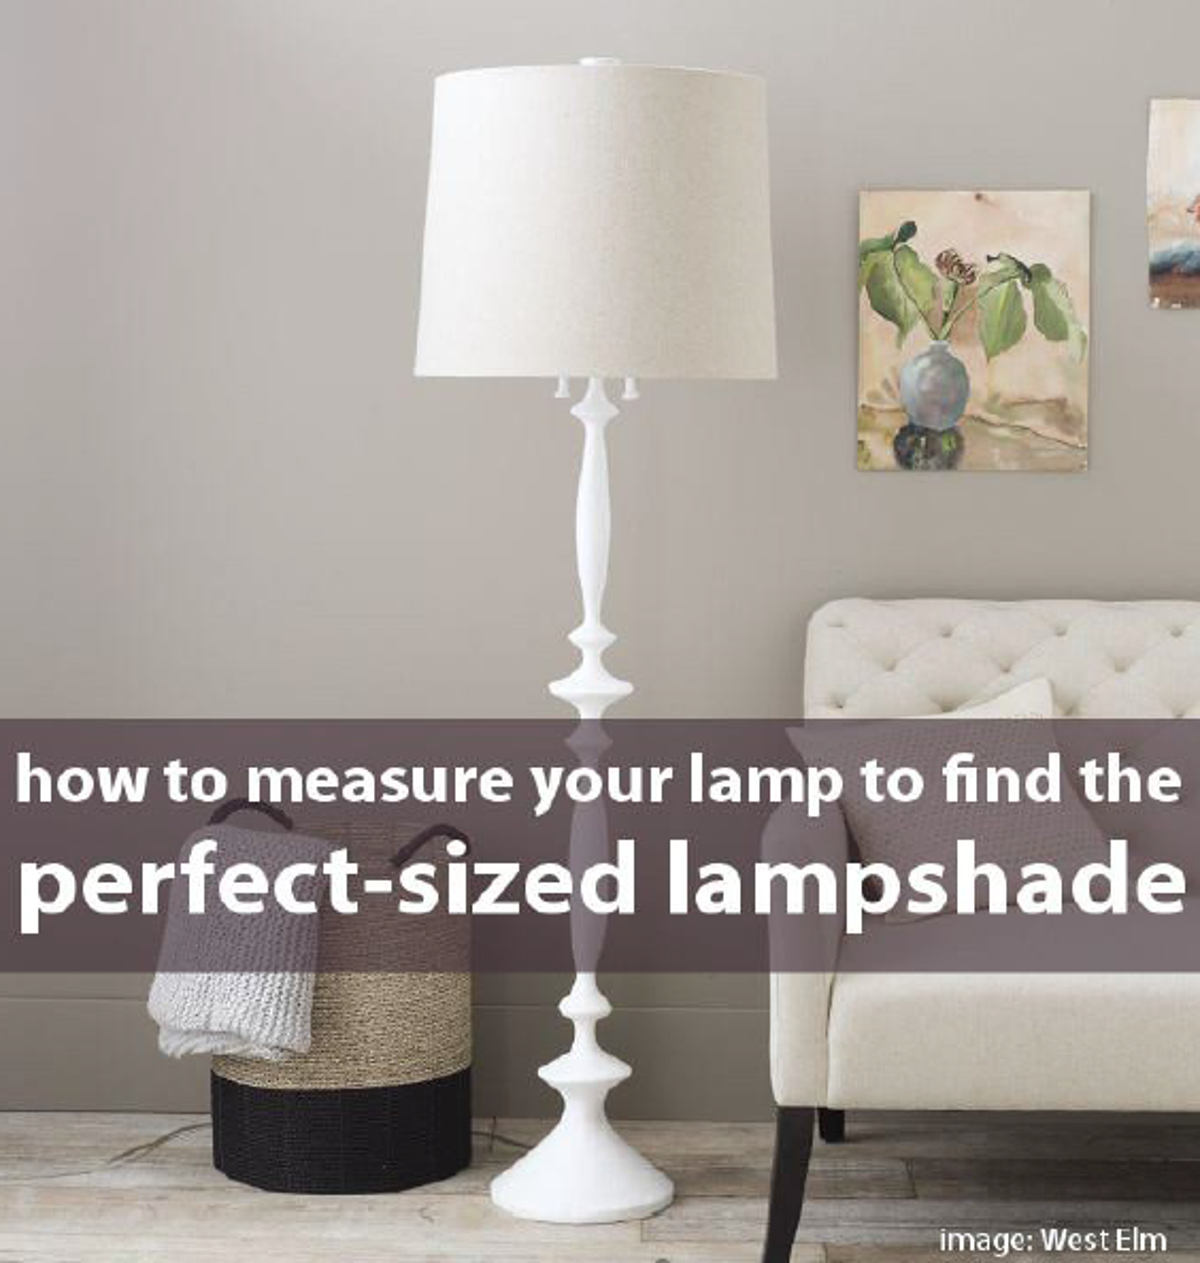 How To Measure A Lamp Shade Measure Your Lamp To Find The Right Sized Lampshade  Lamp Bases